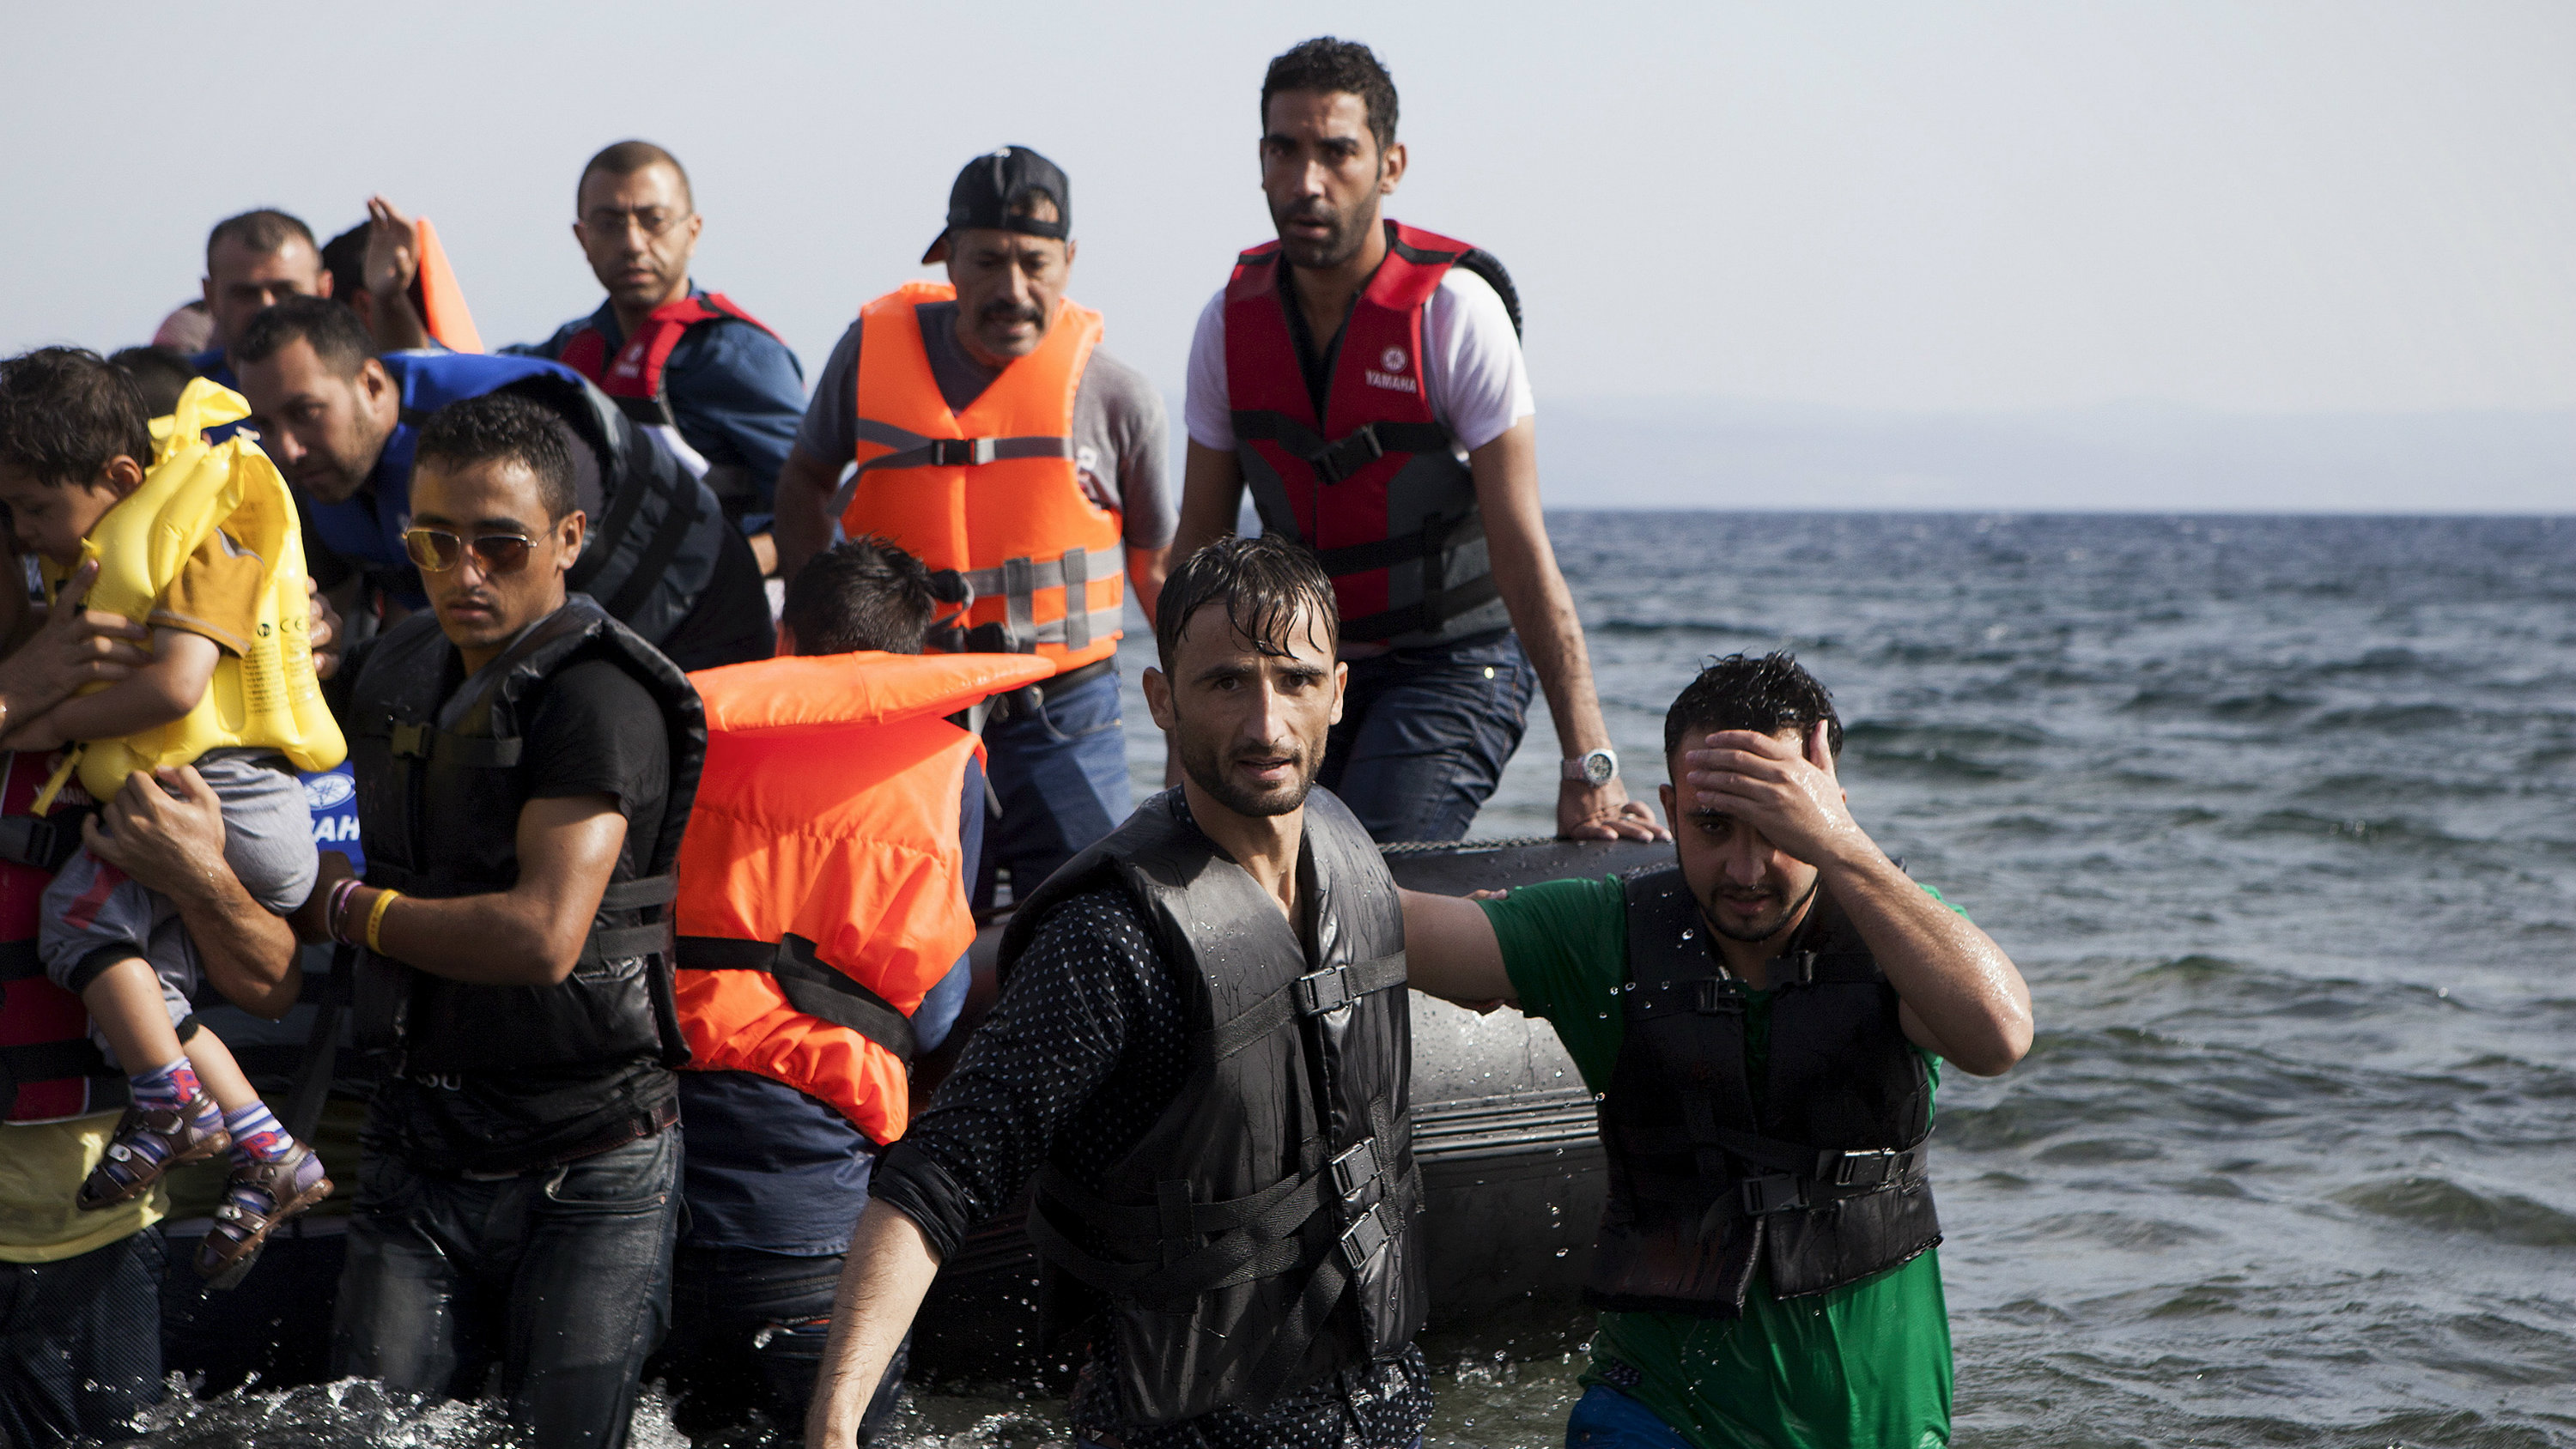 Syrian refugees arrive on a dinghy on the Greek island of Lesbos, September 7, 2015.